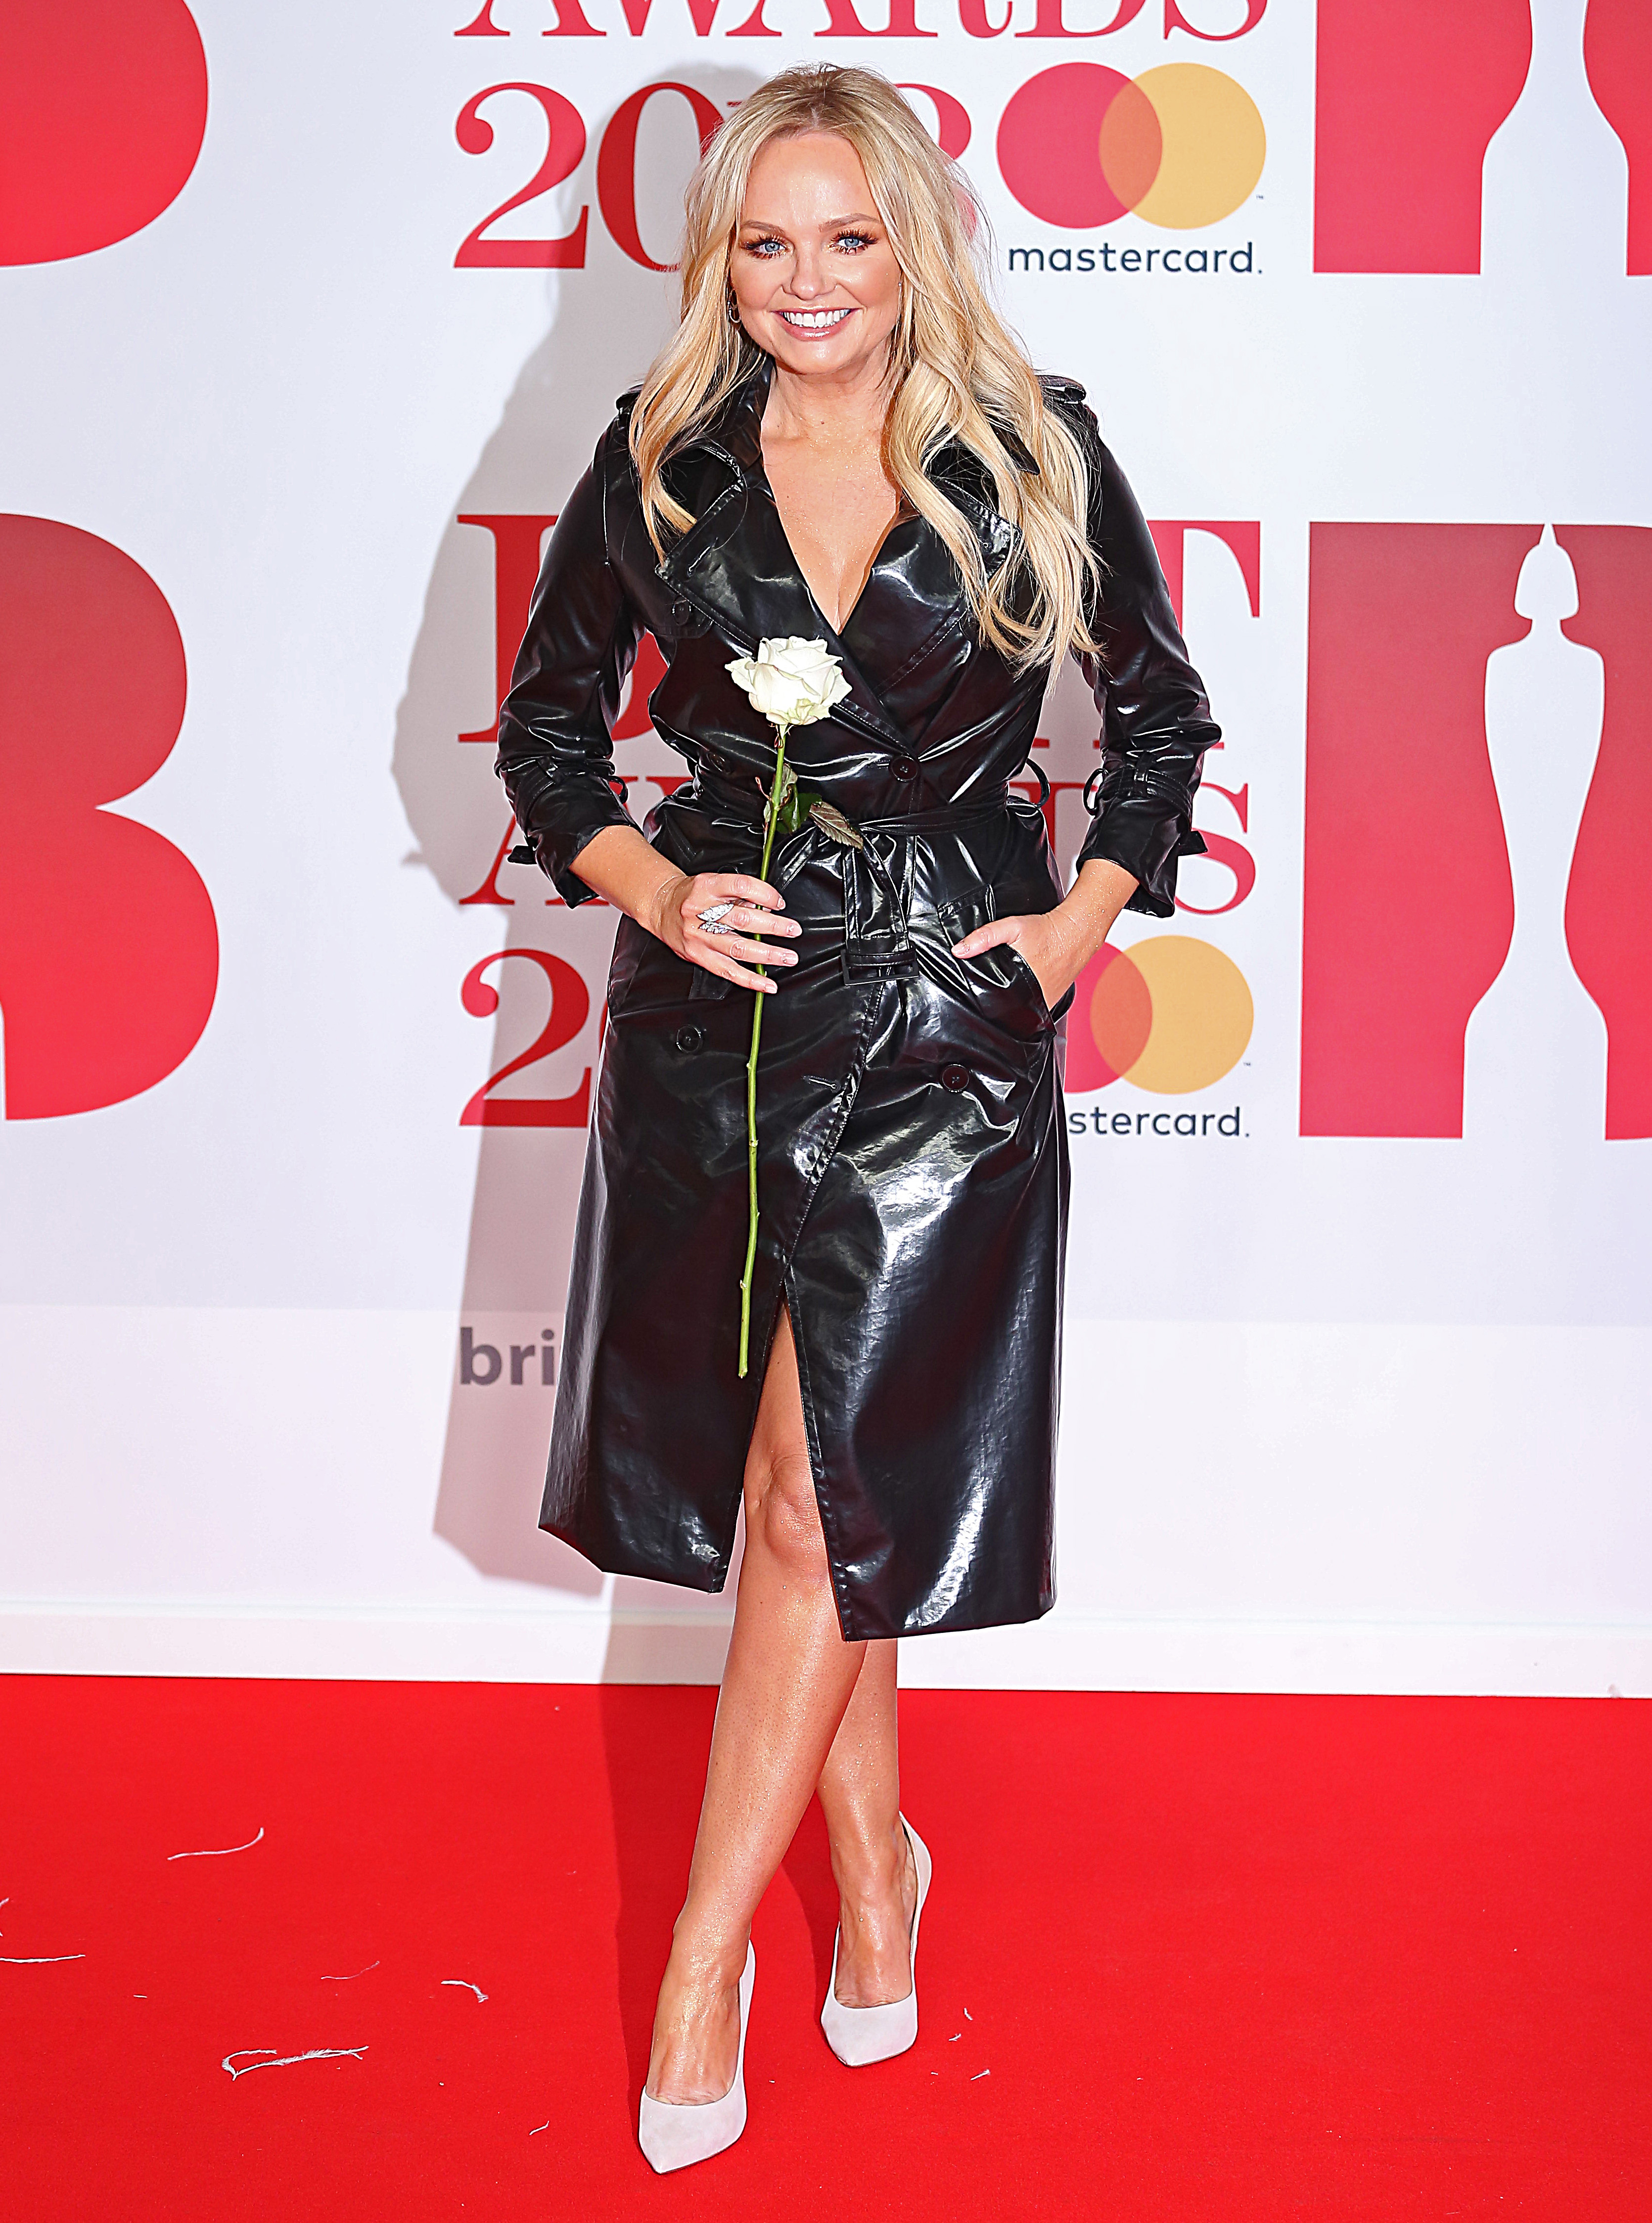 The BRIT Awards 2018, 02 Arena, London UK, 21 February 2018, Photo by Brett D. Cove <P> Pictured: v <B>Ref: SPL1662674  220218  </B><BR/> Picture by: Brett D. Cove / Splash News<BR/> </P><P> <B>Splash News and Pictures</B><BR/> Los Angeles:	310-821-2666<BR/> New York:	212-619-2666<BR/> London:	870-934-2666<BR/> <span id=